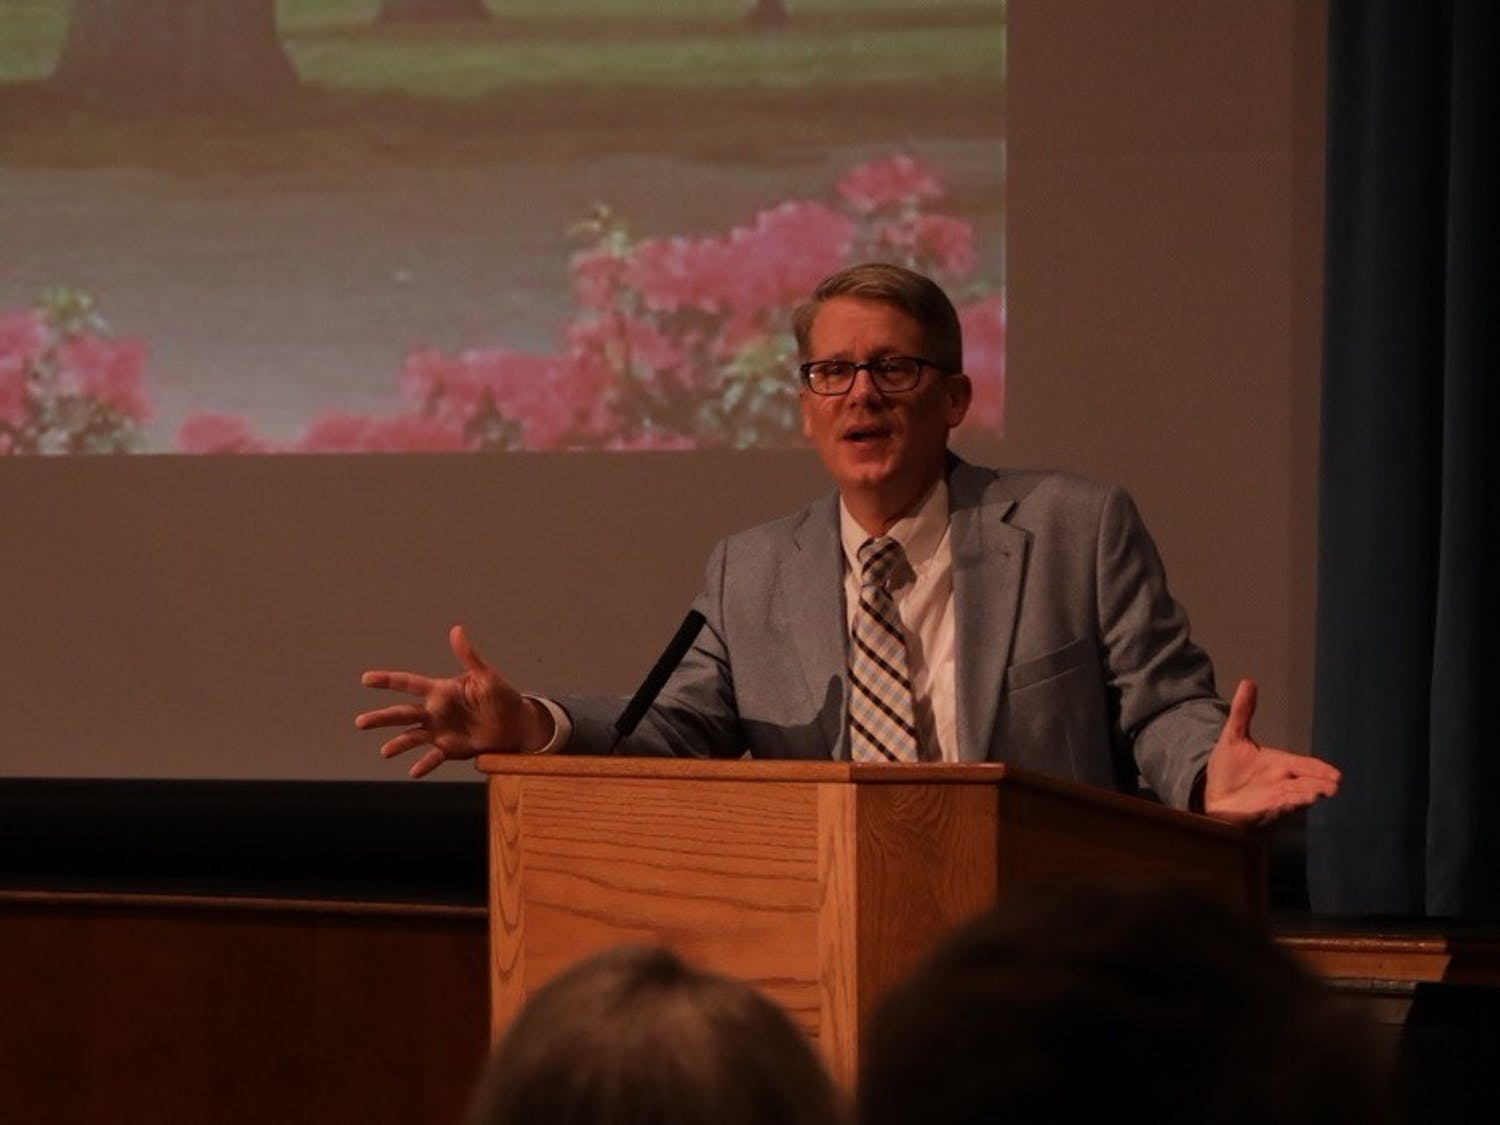 Mike Adams, a UNCW professor and conservative columnist, gave a speech in the auditorium in the student union Monday evening.